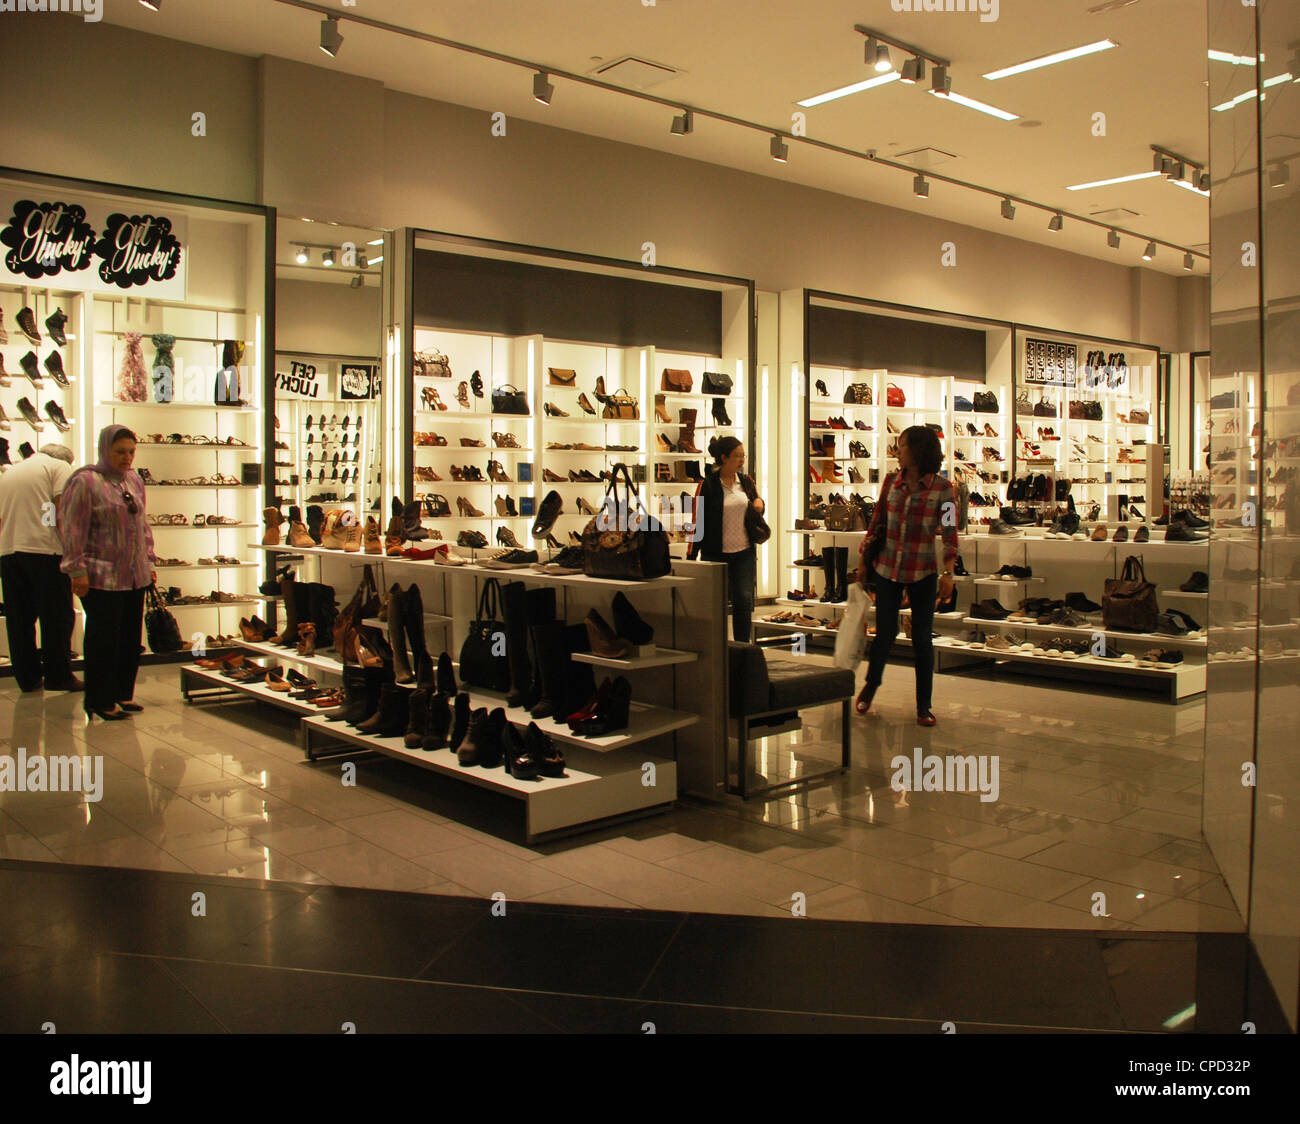 Shopping Mall Inside The Burj Khalifa Dubai Stock Photo